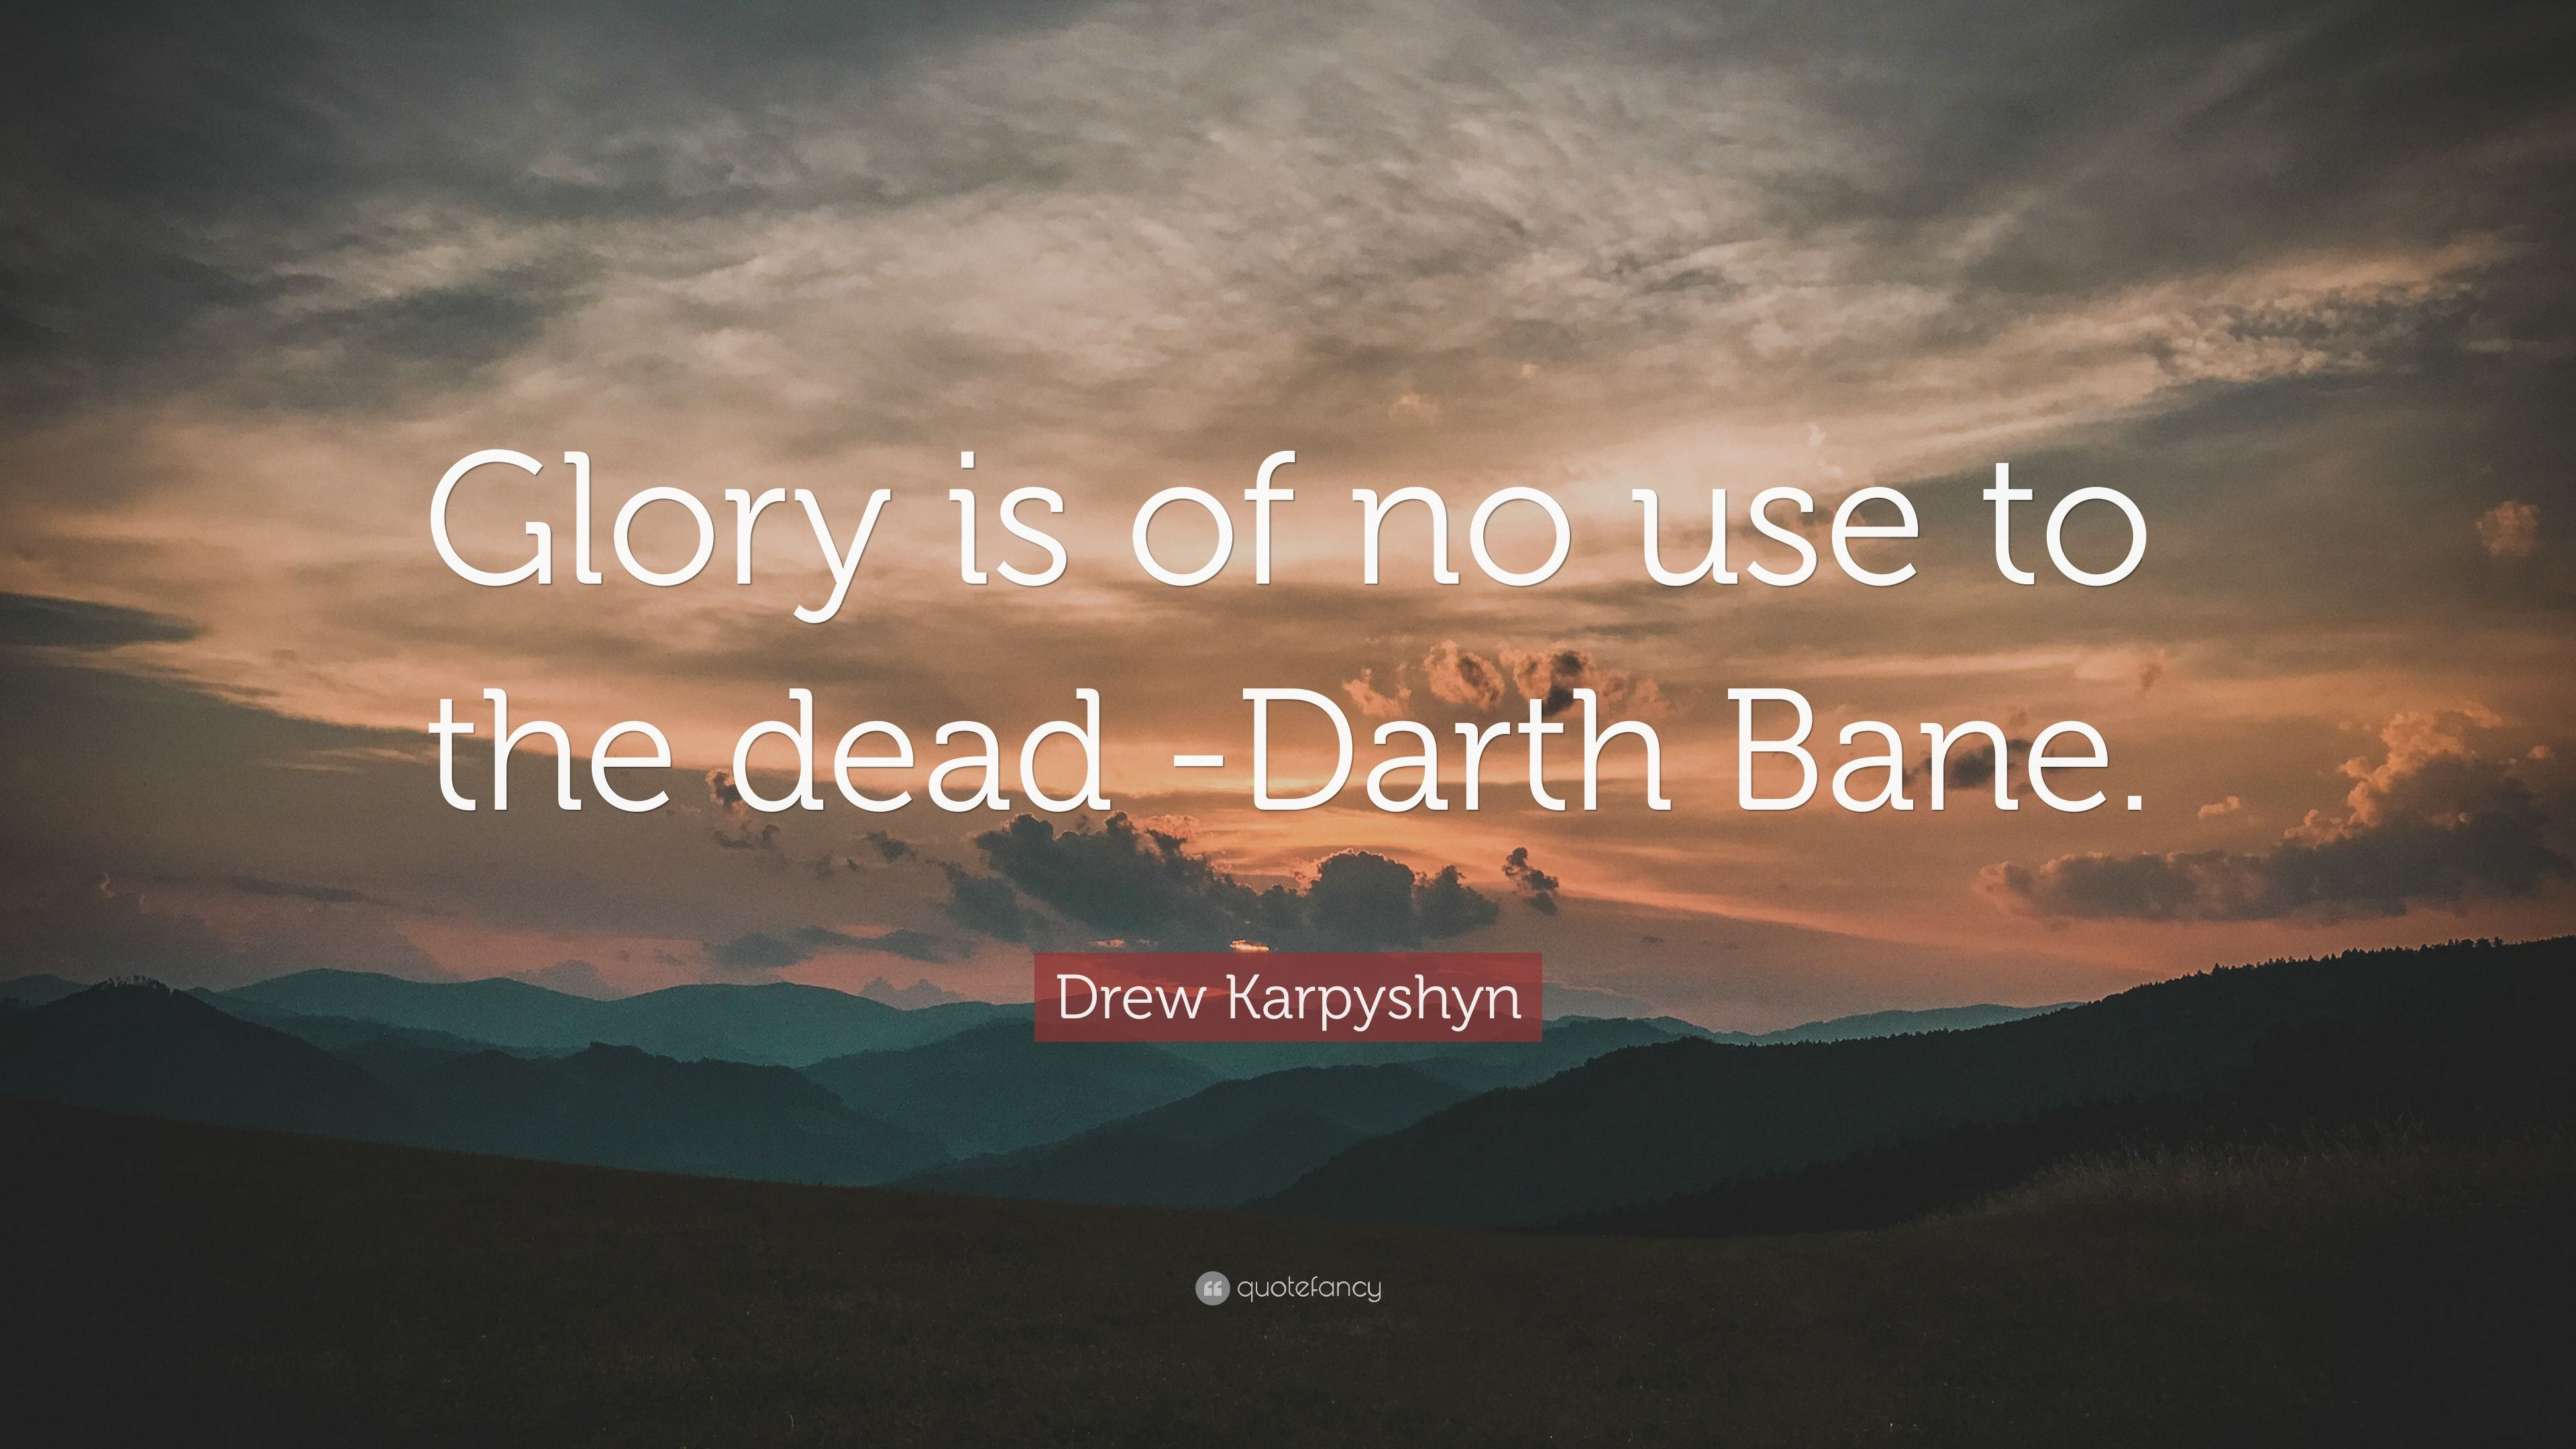 Drew Karpyshyn Quote Glory Is Of No Use To The Dead Darth